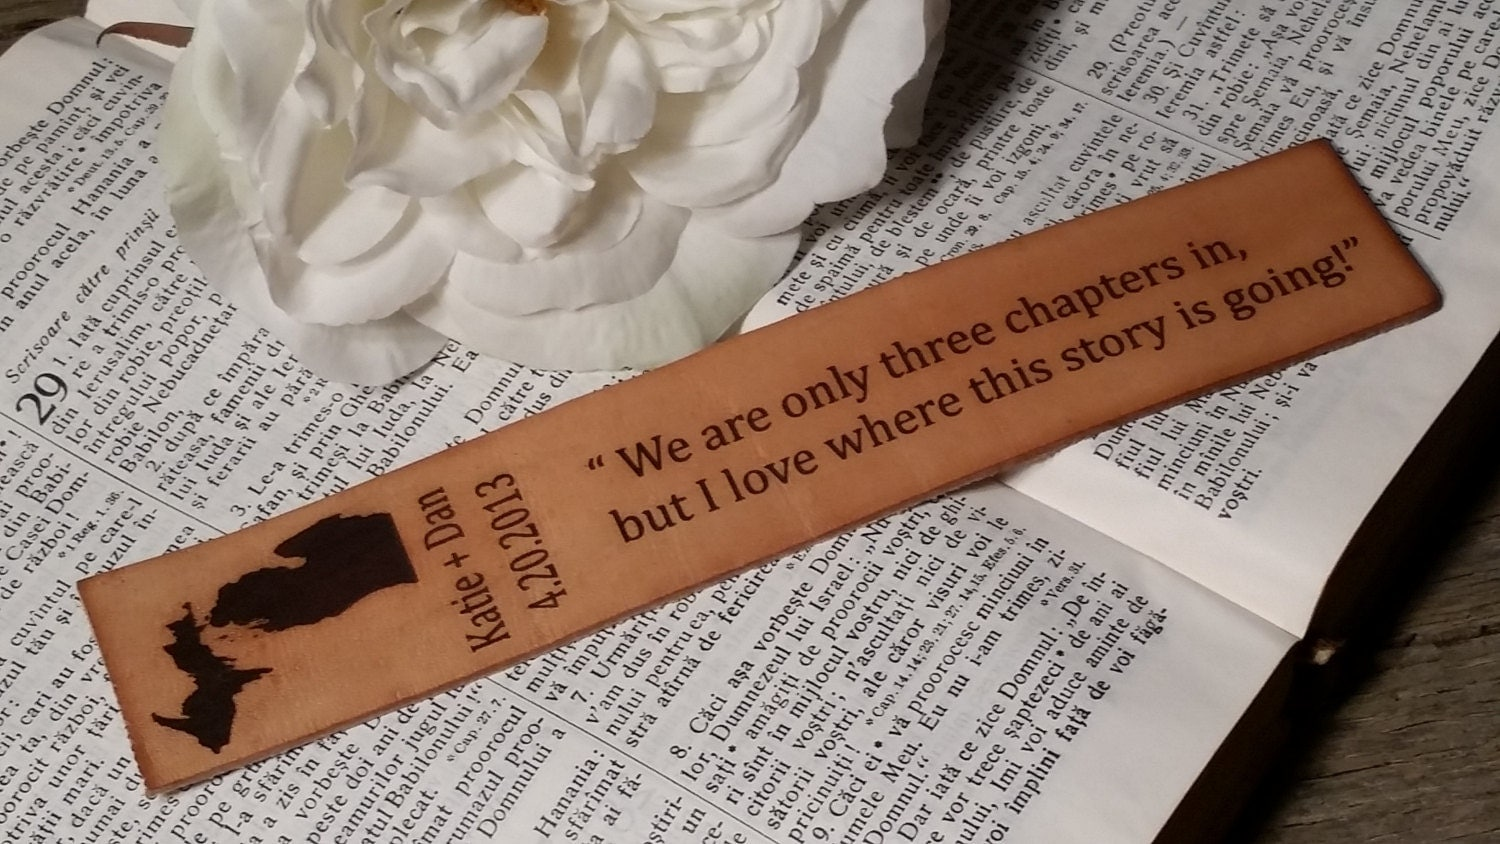 What Is 3rd Wedding Anniversary Gift: 3rd Wedding Anniversary Custom Engraved Leather Bookmark